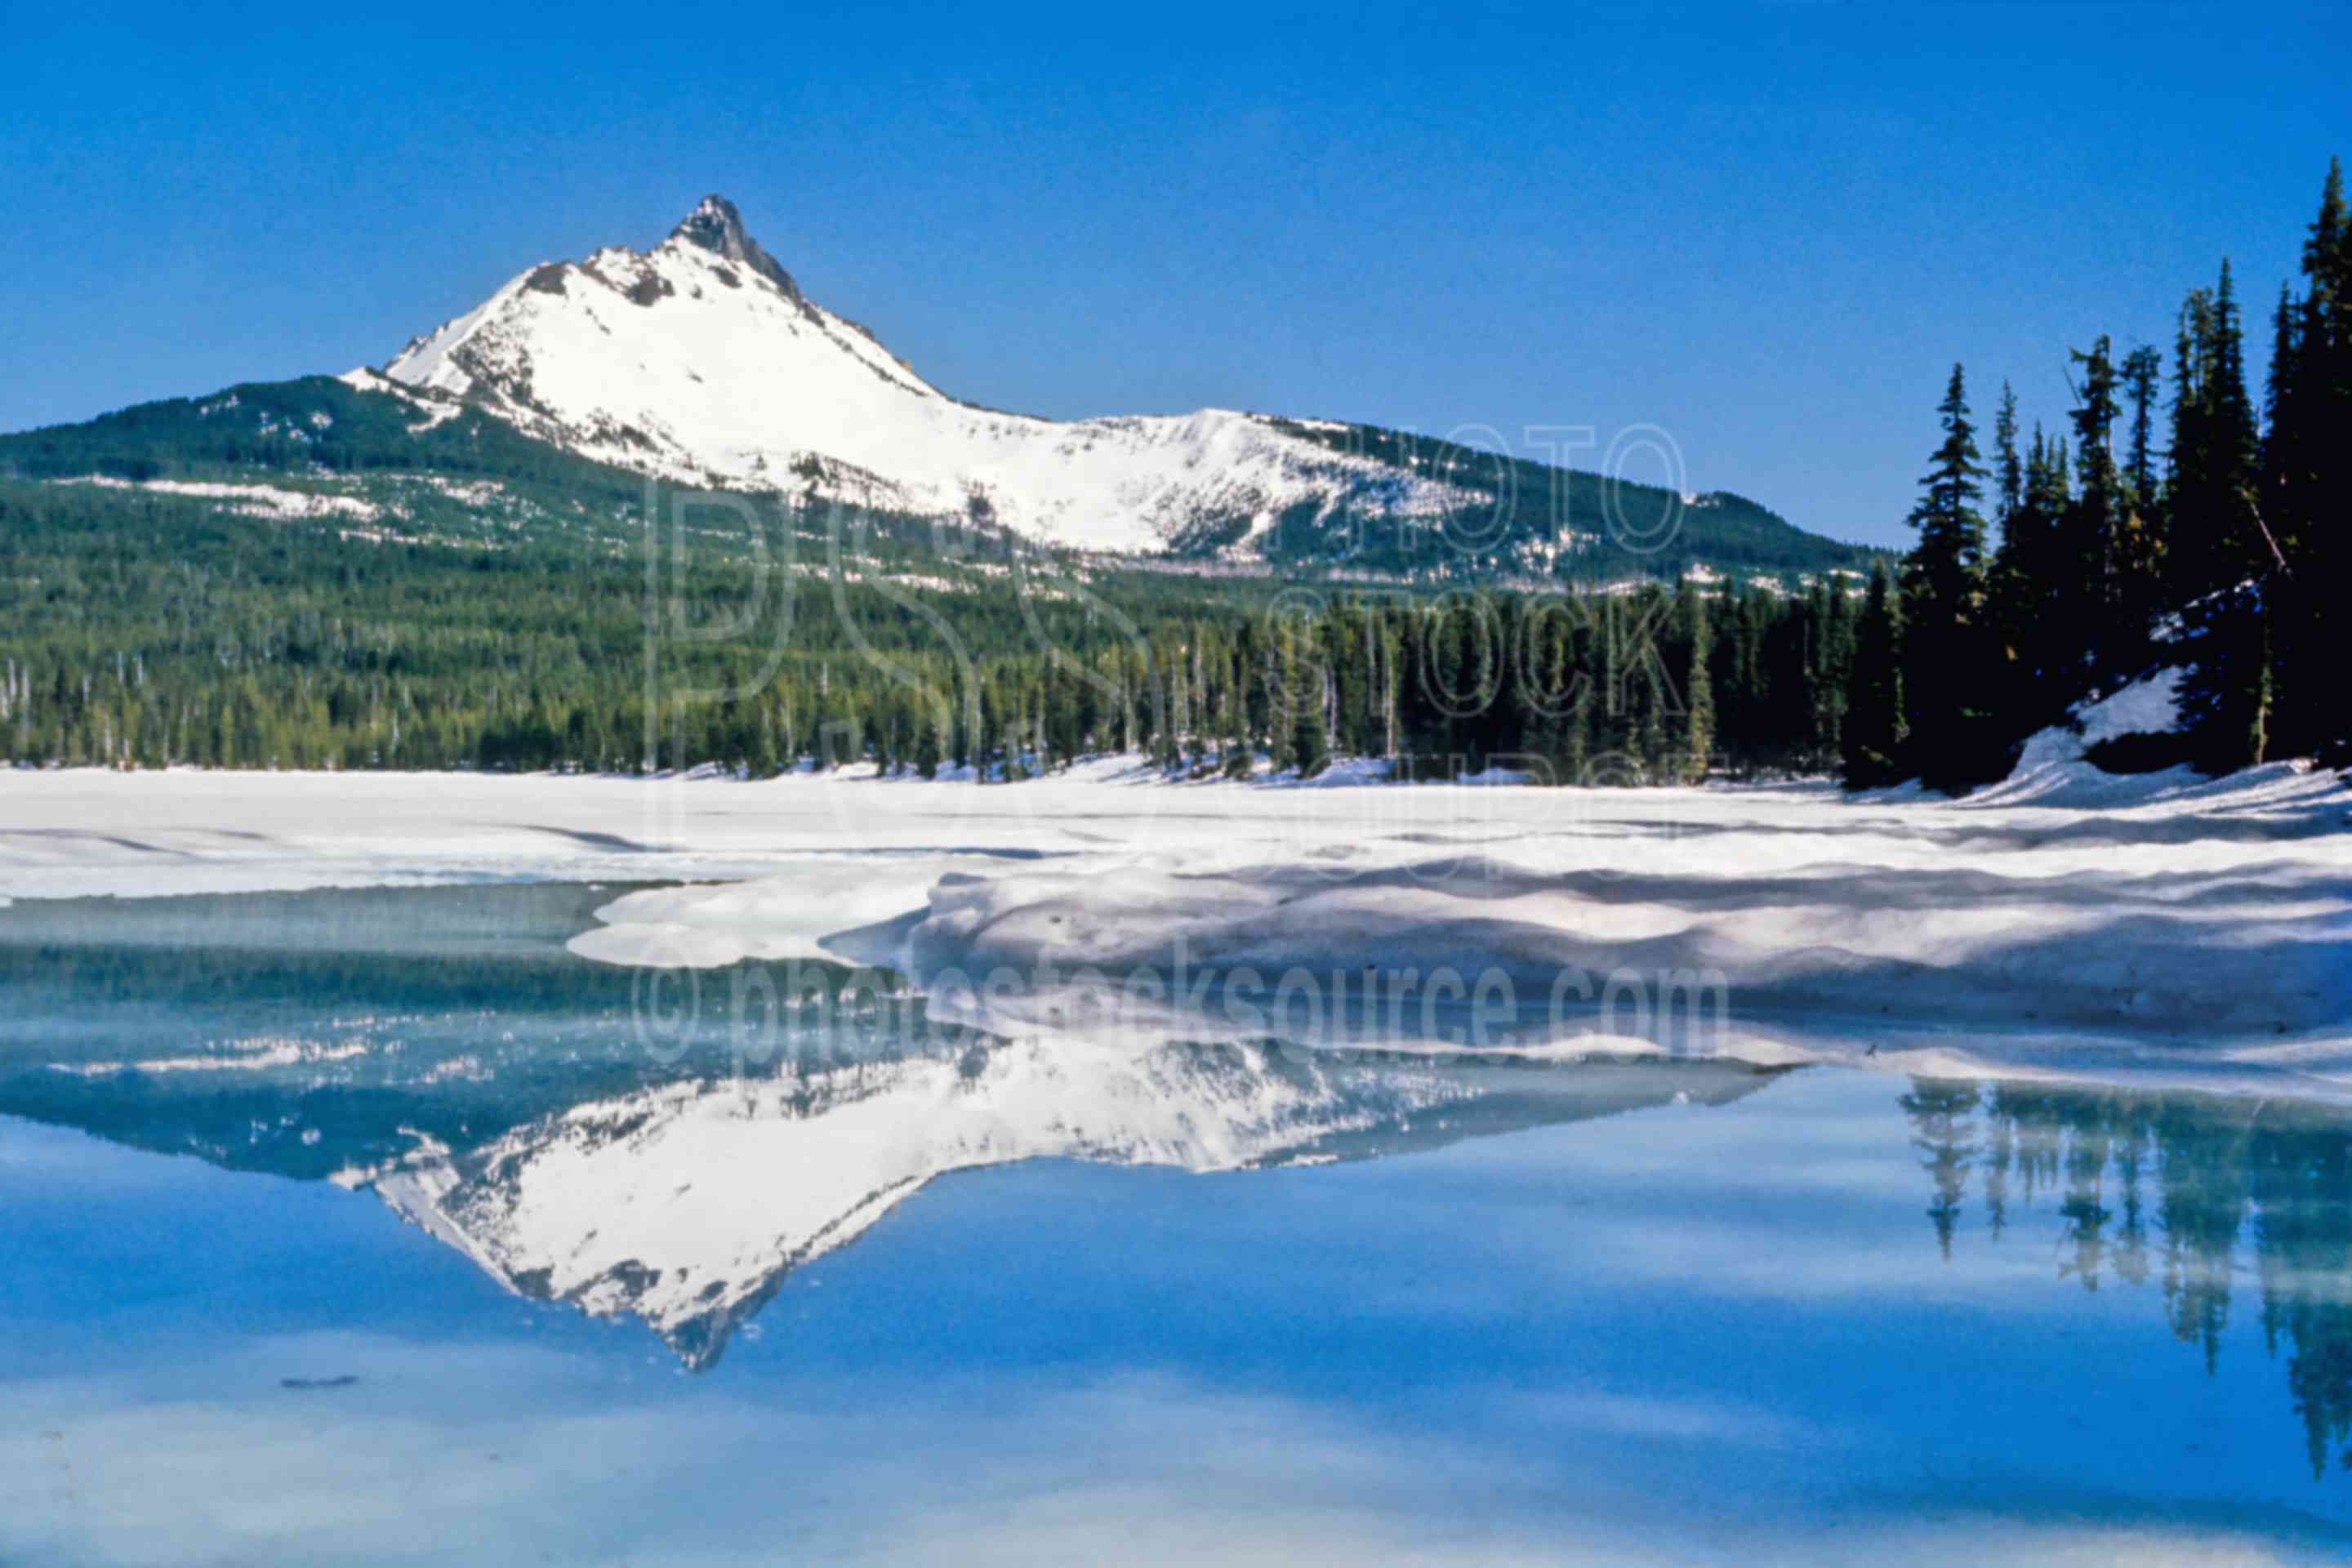 Mt. Washington, Big Lake,reflection,snow,mount,winter,lakes rivers,mountains